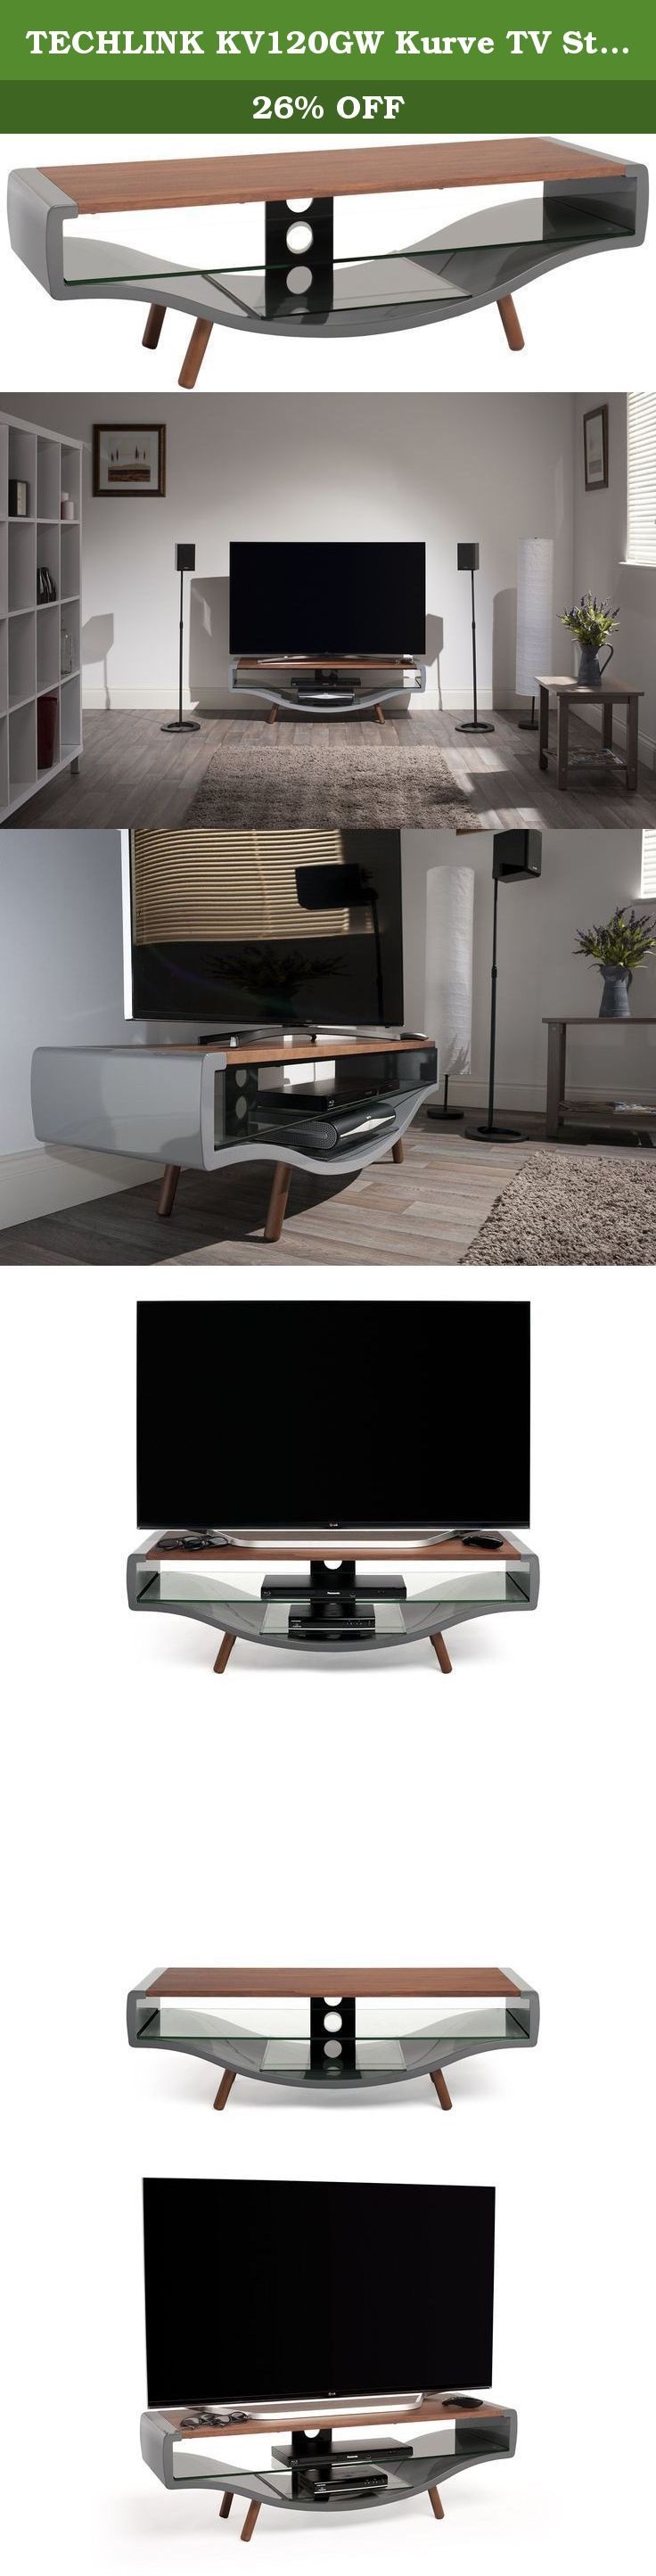 TECHLINK KV120GW Kurve TV Stand with Gloss Grey Frame and a Walnut Veneer Top Panel for Screens up to 65-Inch. The contemporary Kurve offers a striking alternative to the conventional TV cabinet. With elegant lines and practical shelving combined with discrete cable management, Kurve exceeds expectations. Finished in gloss grey with a choice of either light oak or walnut veneer top panel and legs, the Kurve will sit beautifully in any modern interior.